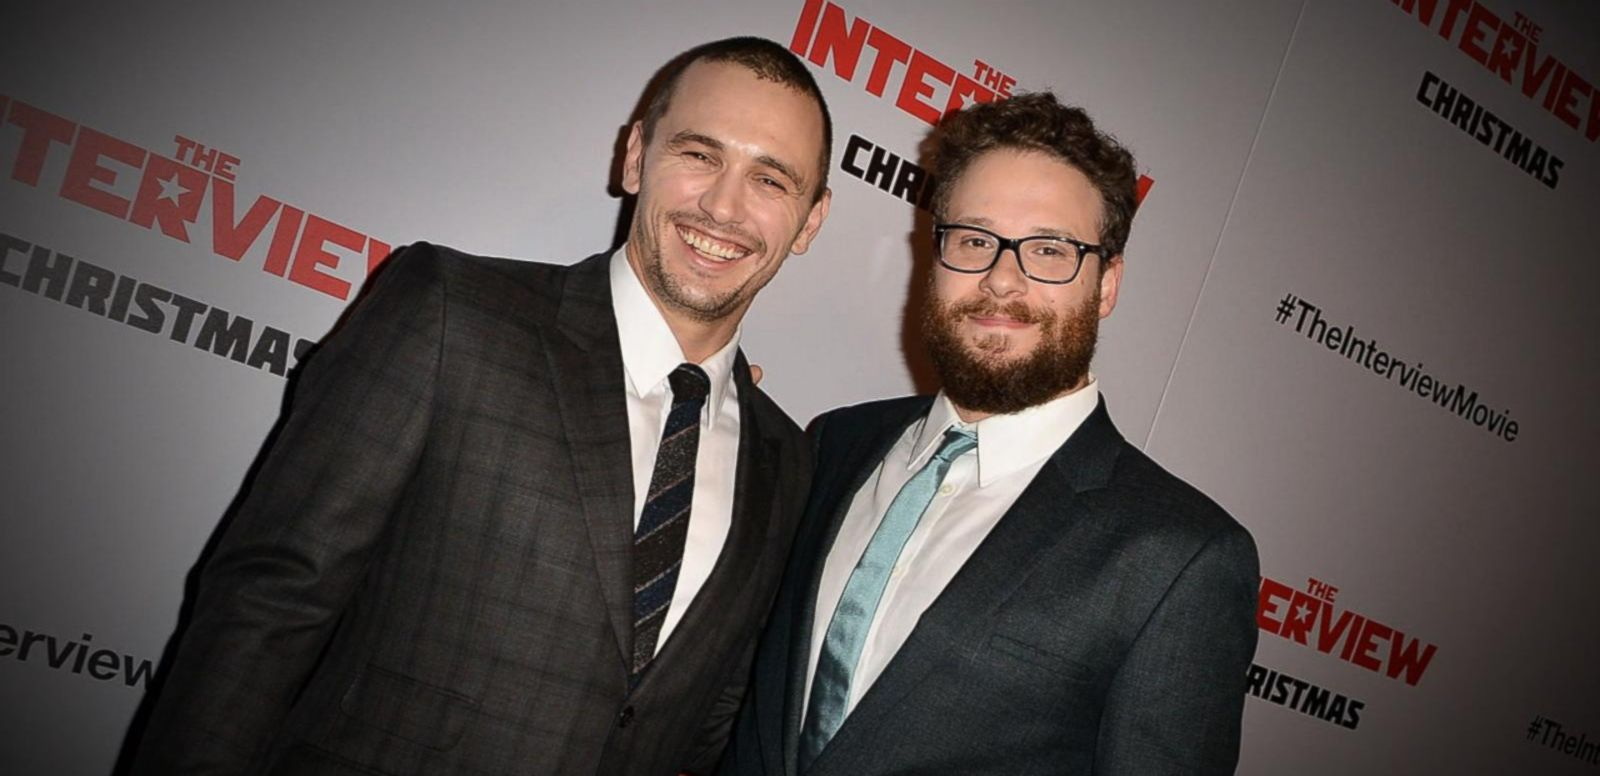 VIDEO: Movie Theater Chain Reportedly Pulls 'The Interview' Due to Threats